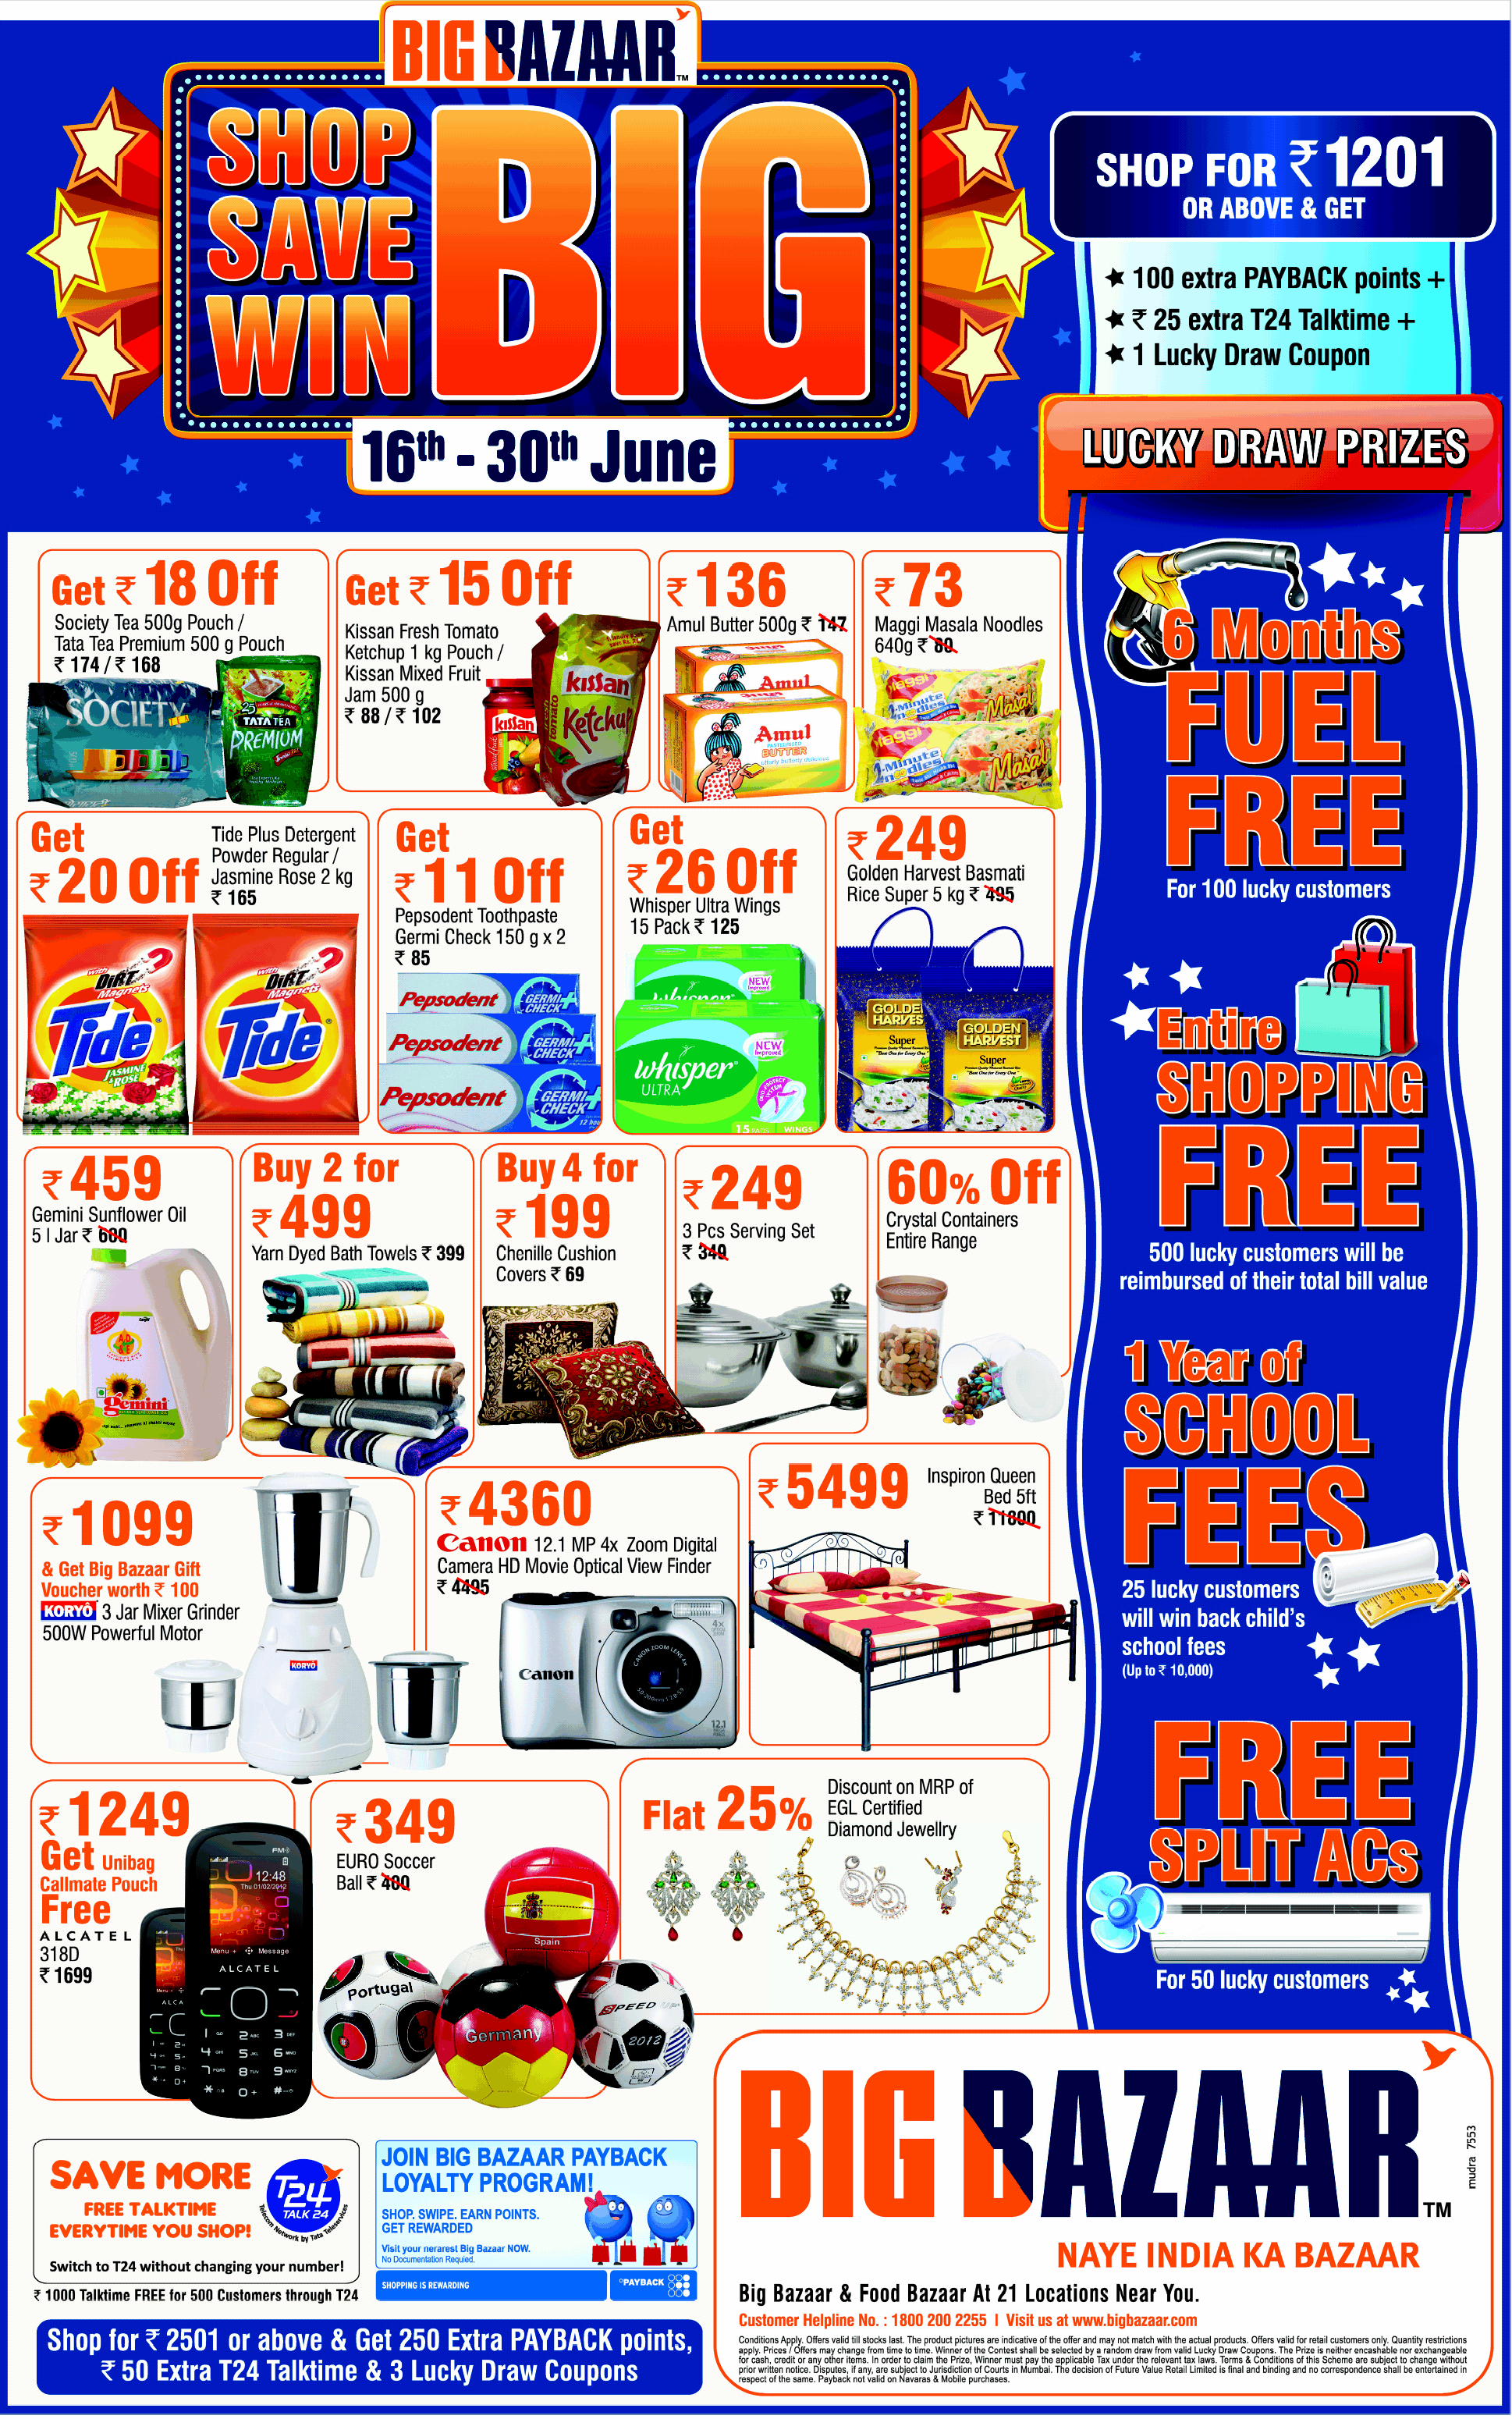 Big Bazaar - Shop Save &amp; Win